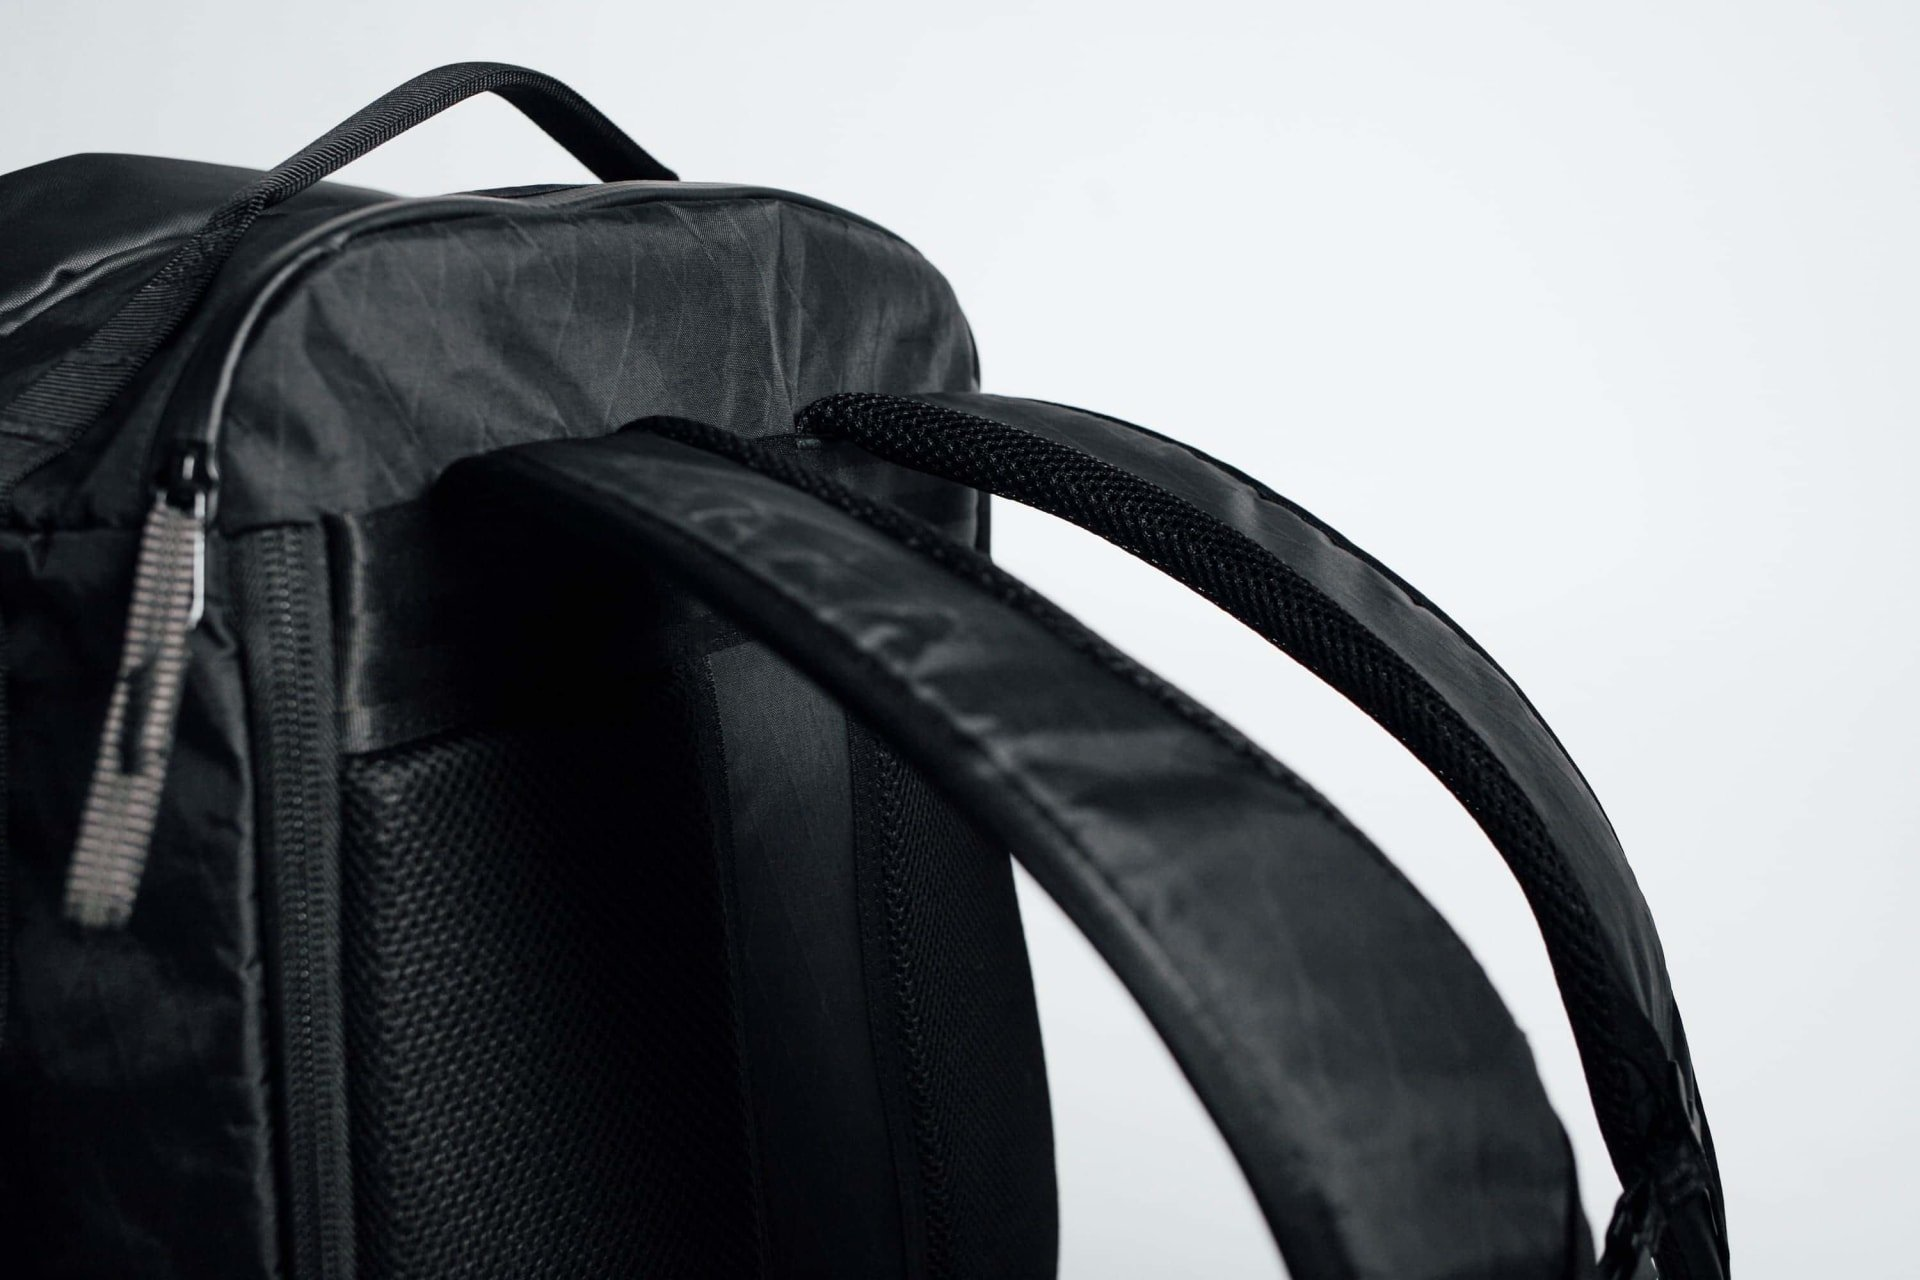 Comfortable Ergonomically Designed Shoulder Straps